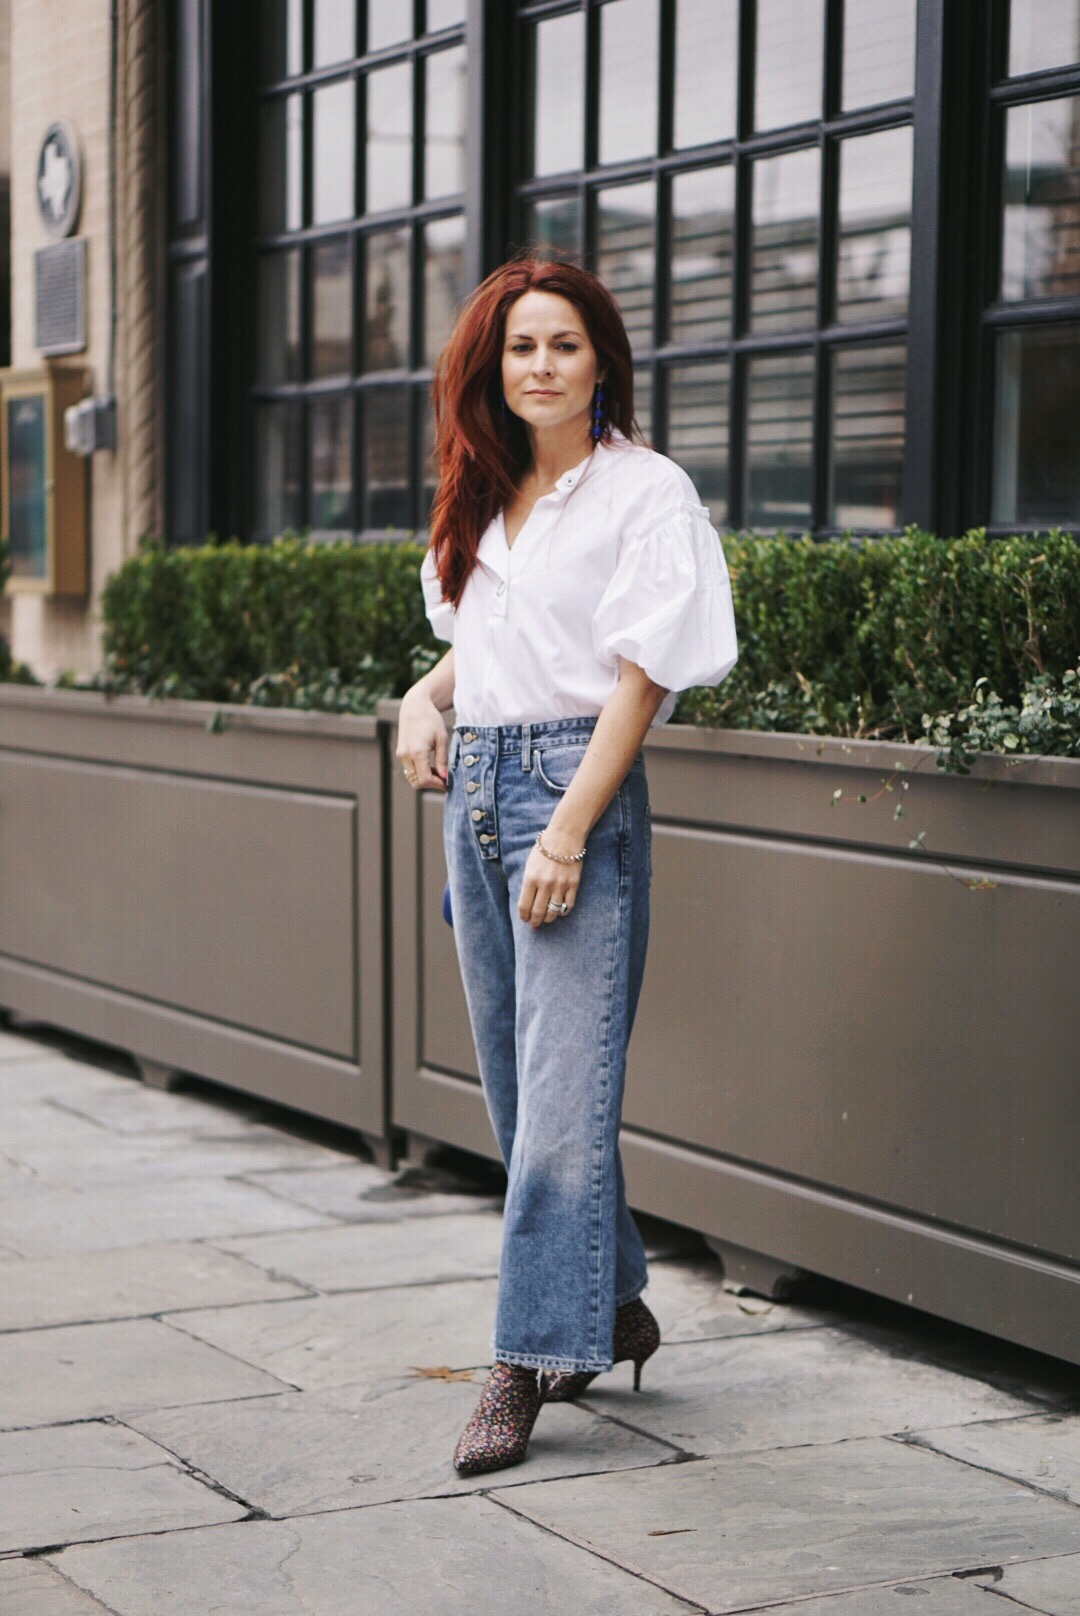 wide leg pant outfits, floral boots, puff sleeves, red hair inspiration, spring time